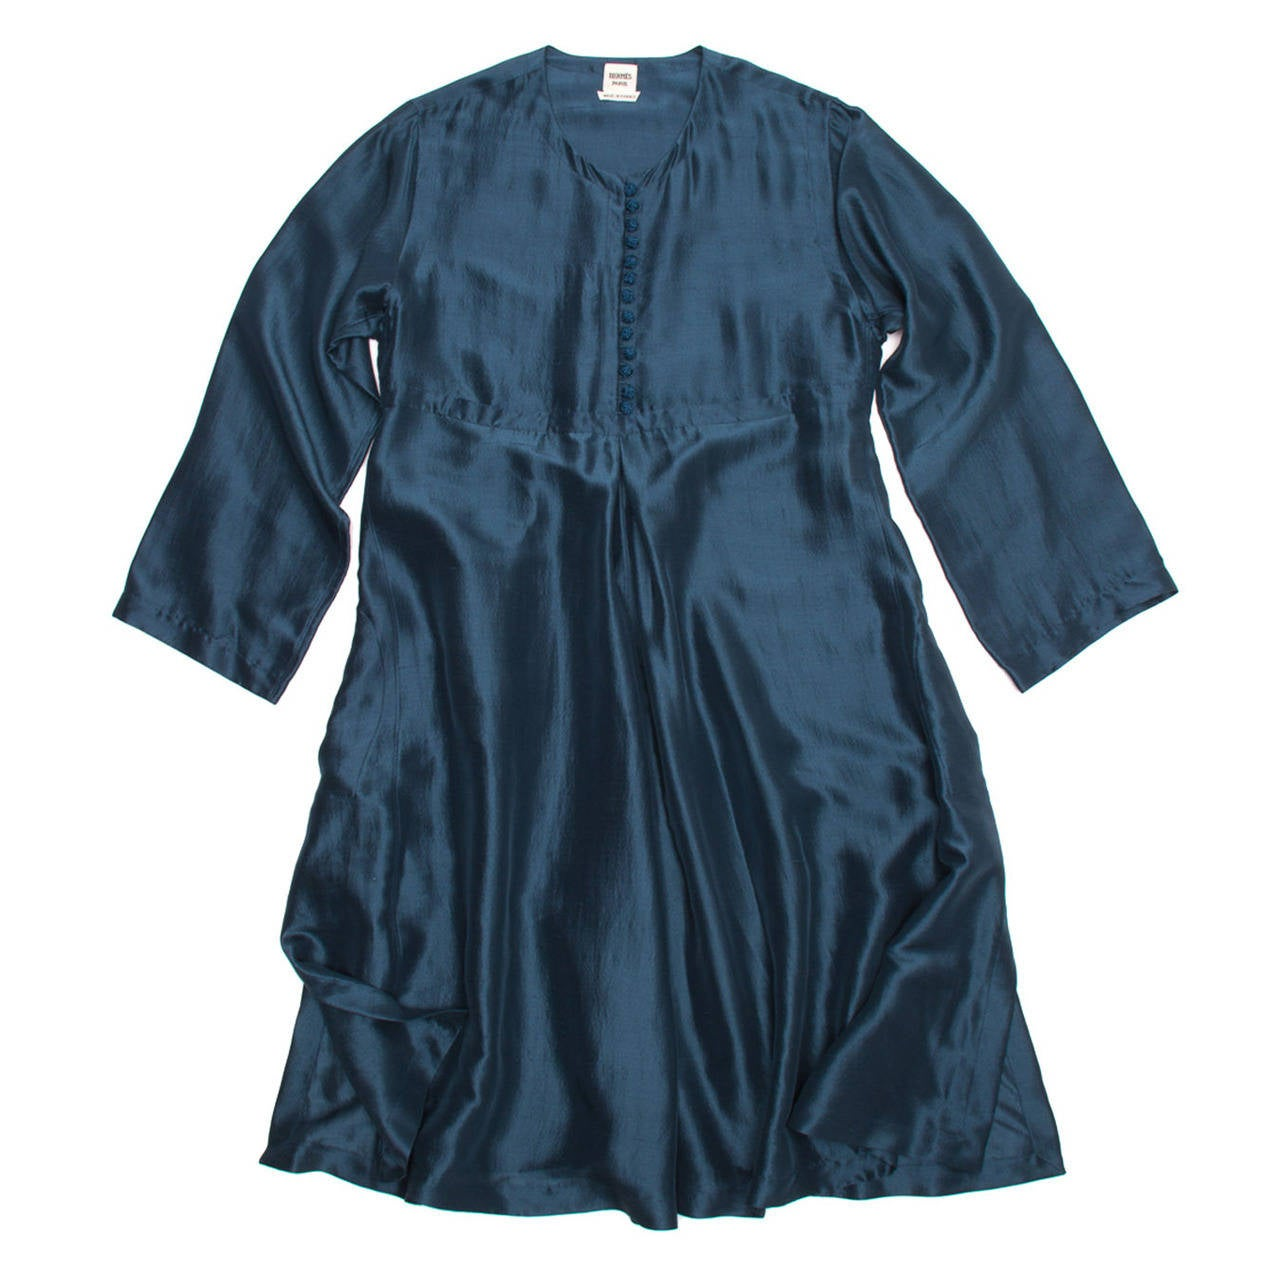 Hermes Silk Teal Tunic Dress